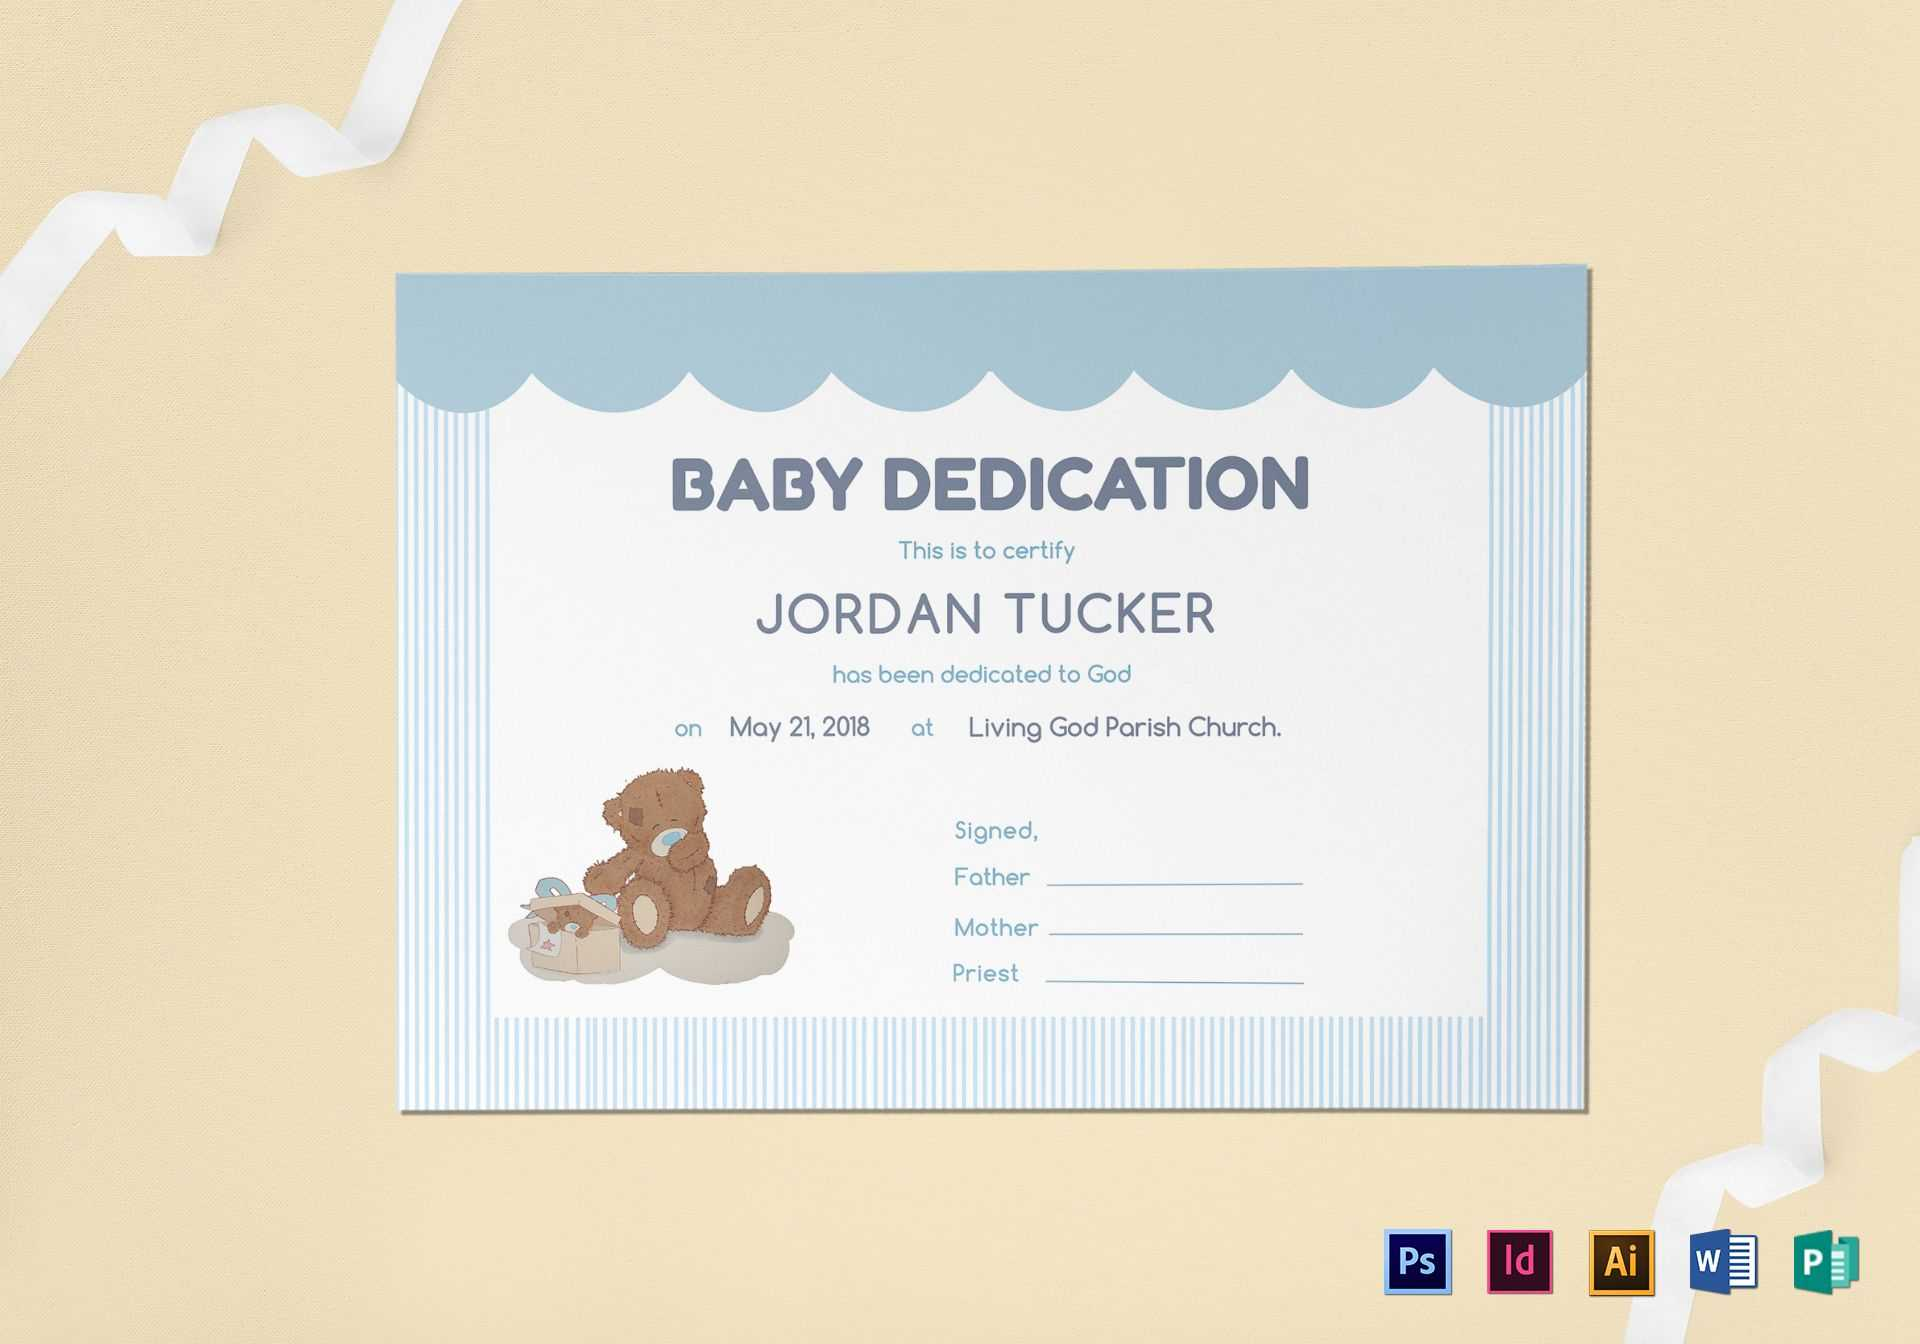 Baby Dedication Certificate Template Within Baby Dedication Certificate Template